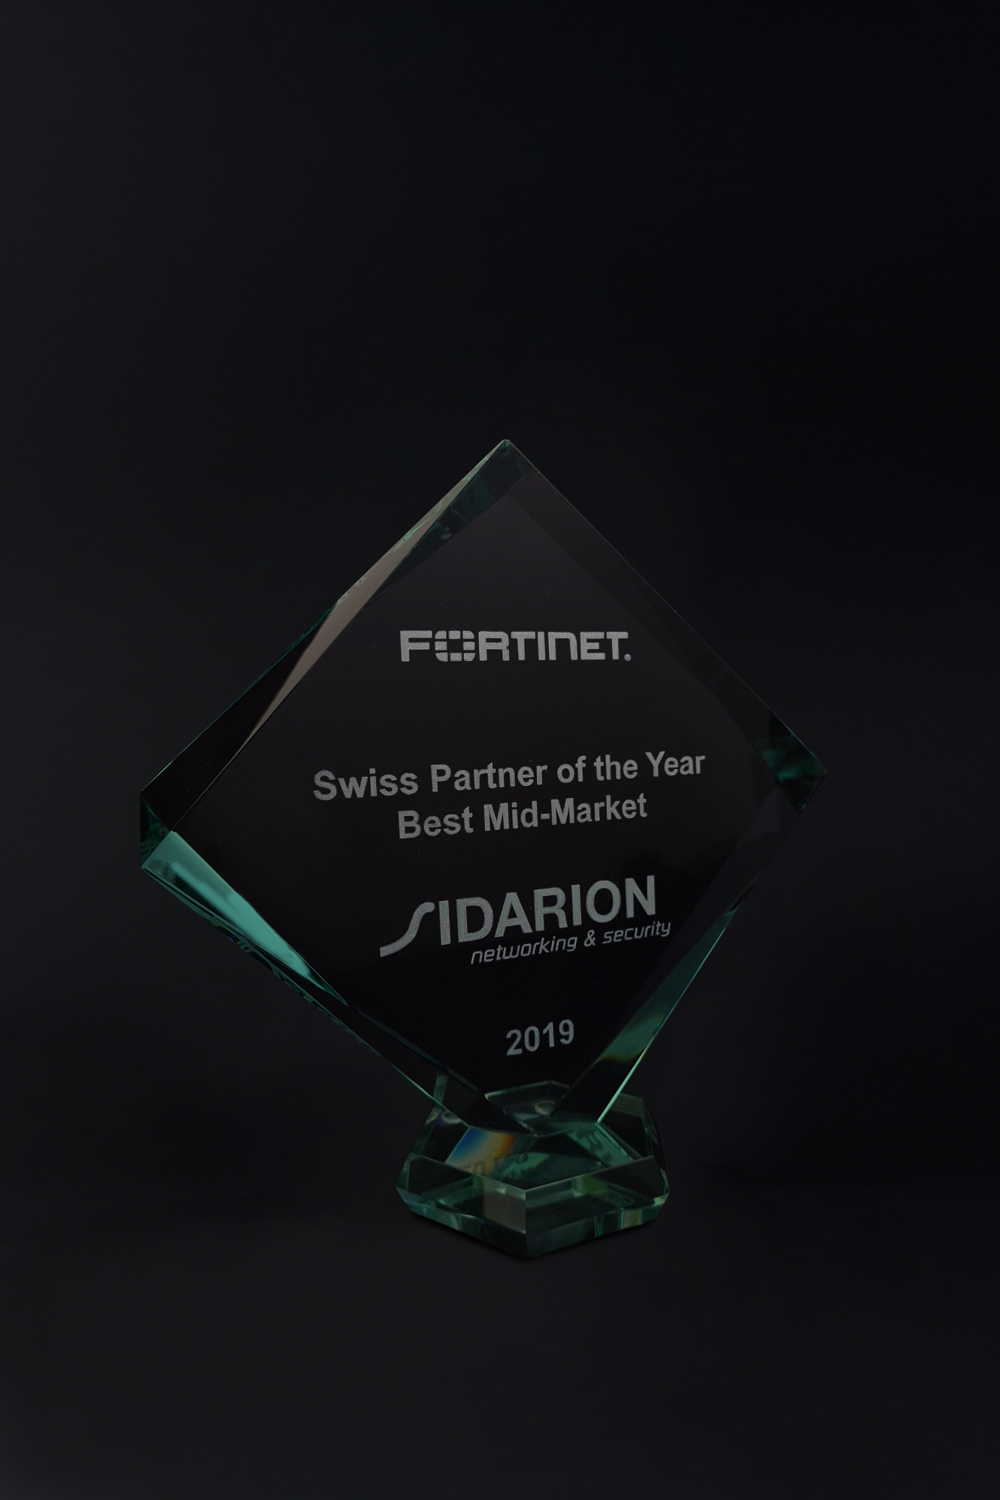 Fortinet Award Swiss Partner of the Year Best Mid-Market 2019